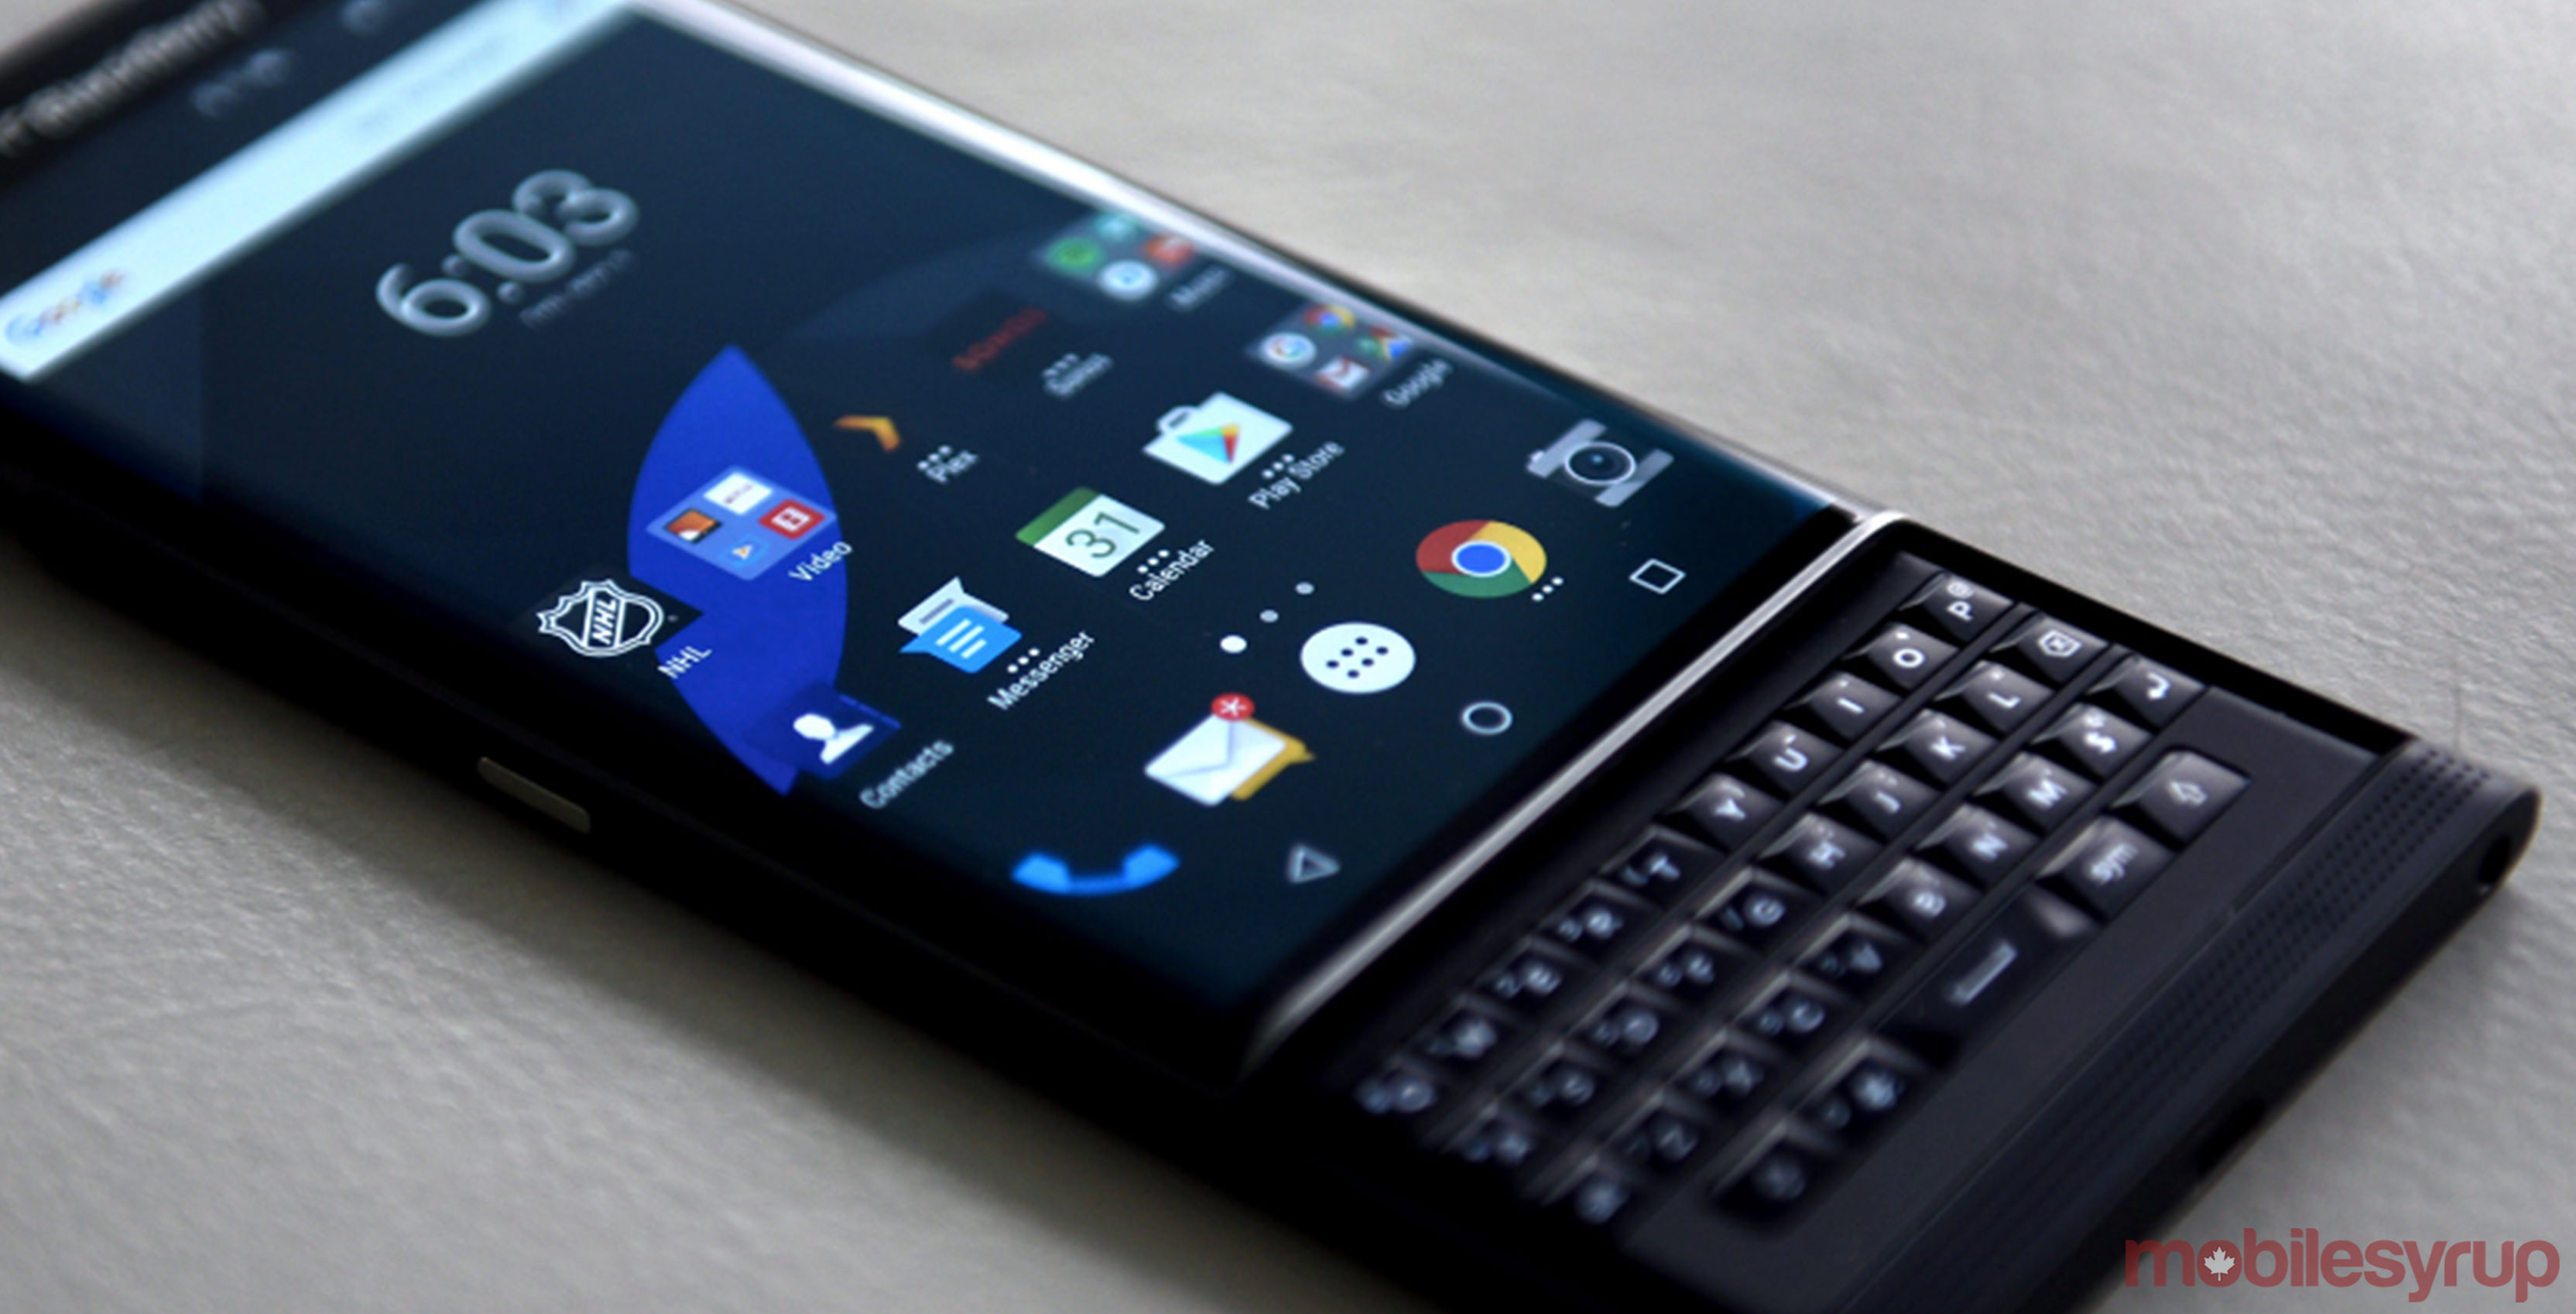 The BlackBerry Priv is one of the most secure Android